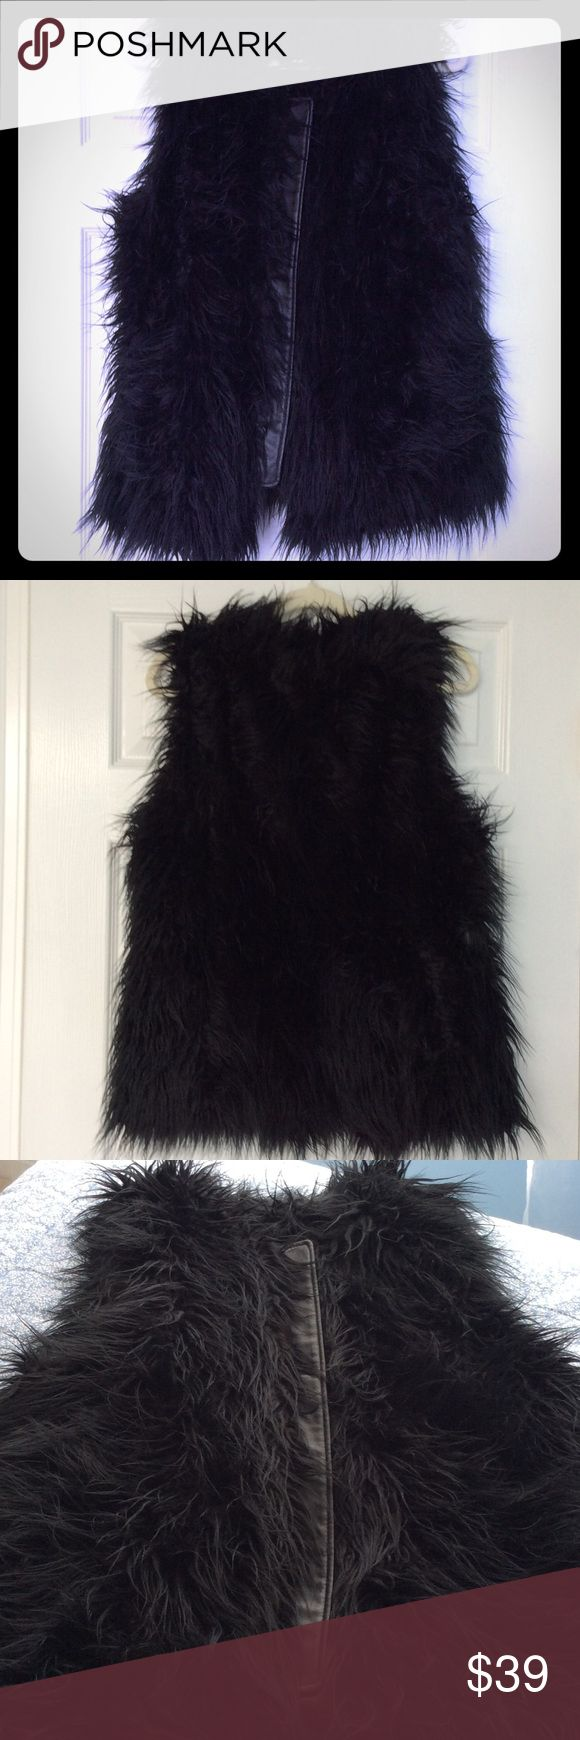 INTERNATIONAL CONCEPTS FAUX FUR CHER VEST LONG BLACK FAUX FUR VEST WITH LINING. HAS A HOOK AND EYE CLOSURE AT THE TOP AND FAUX LEATHER RUNNING DOWN THE MIDDLE FRONT. L GOOD CONDITION. BRING YOUR INNER CHER OUT! INC International Concepts Jackets & Coats Vests